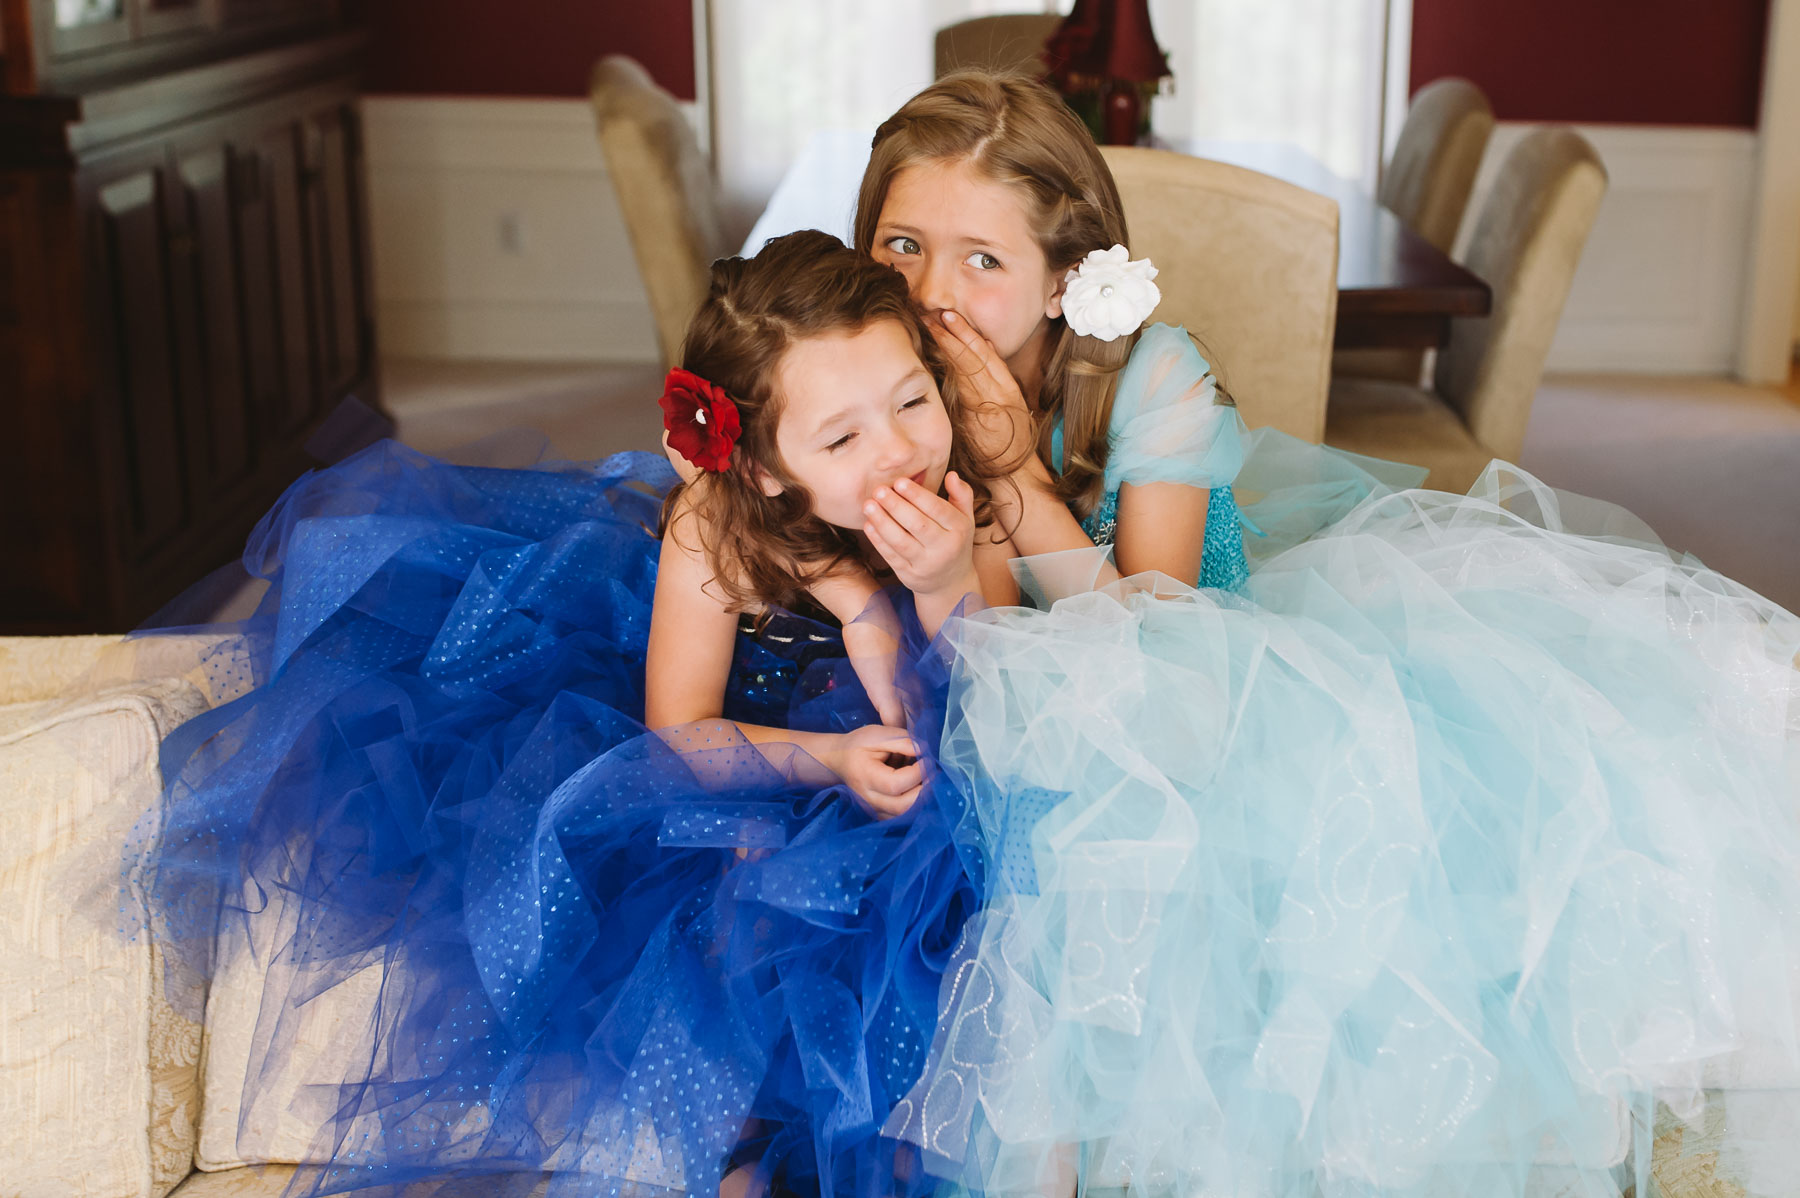 two girls dressed up in Frozen dresses whispering to each other